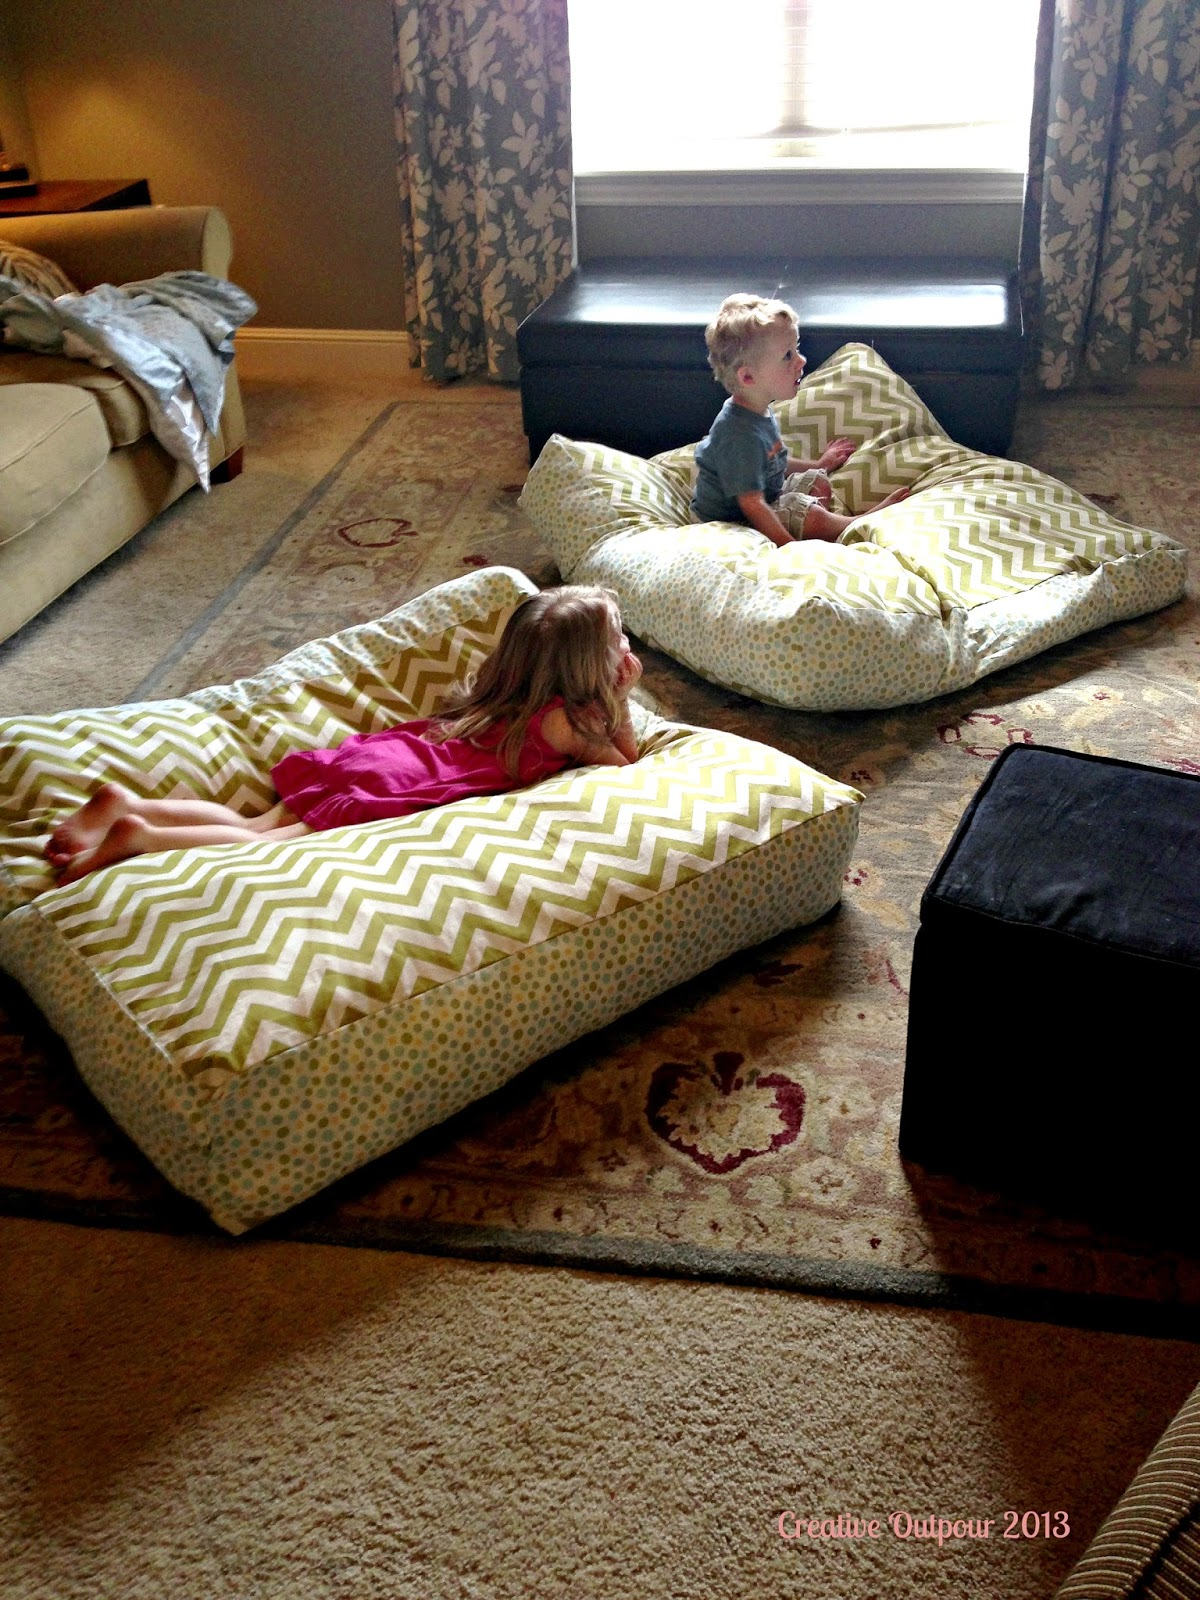 Creative Outpour: Floor Pillows Completed!